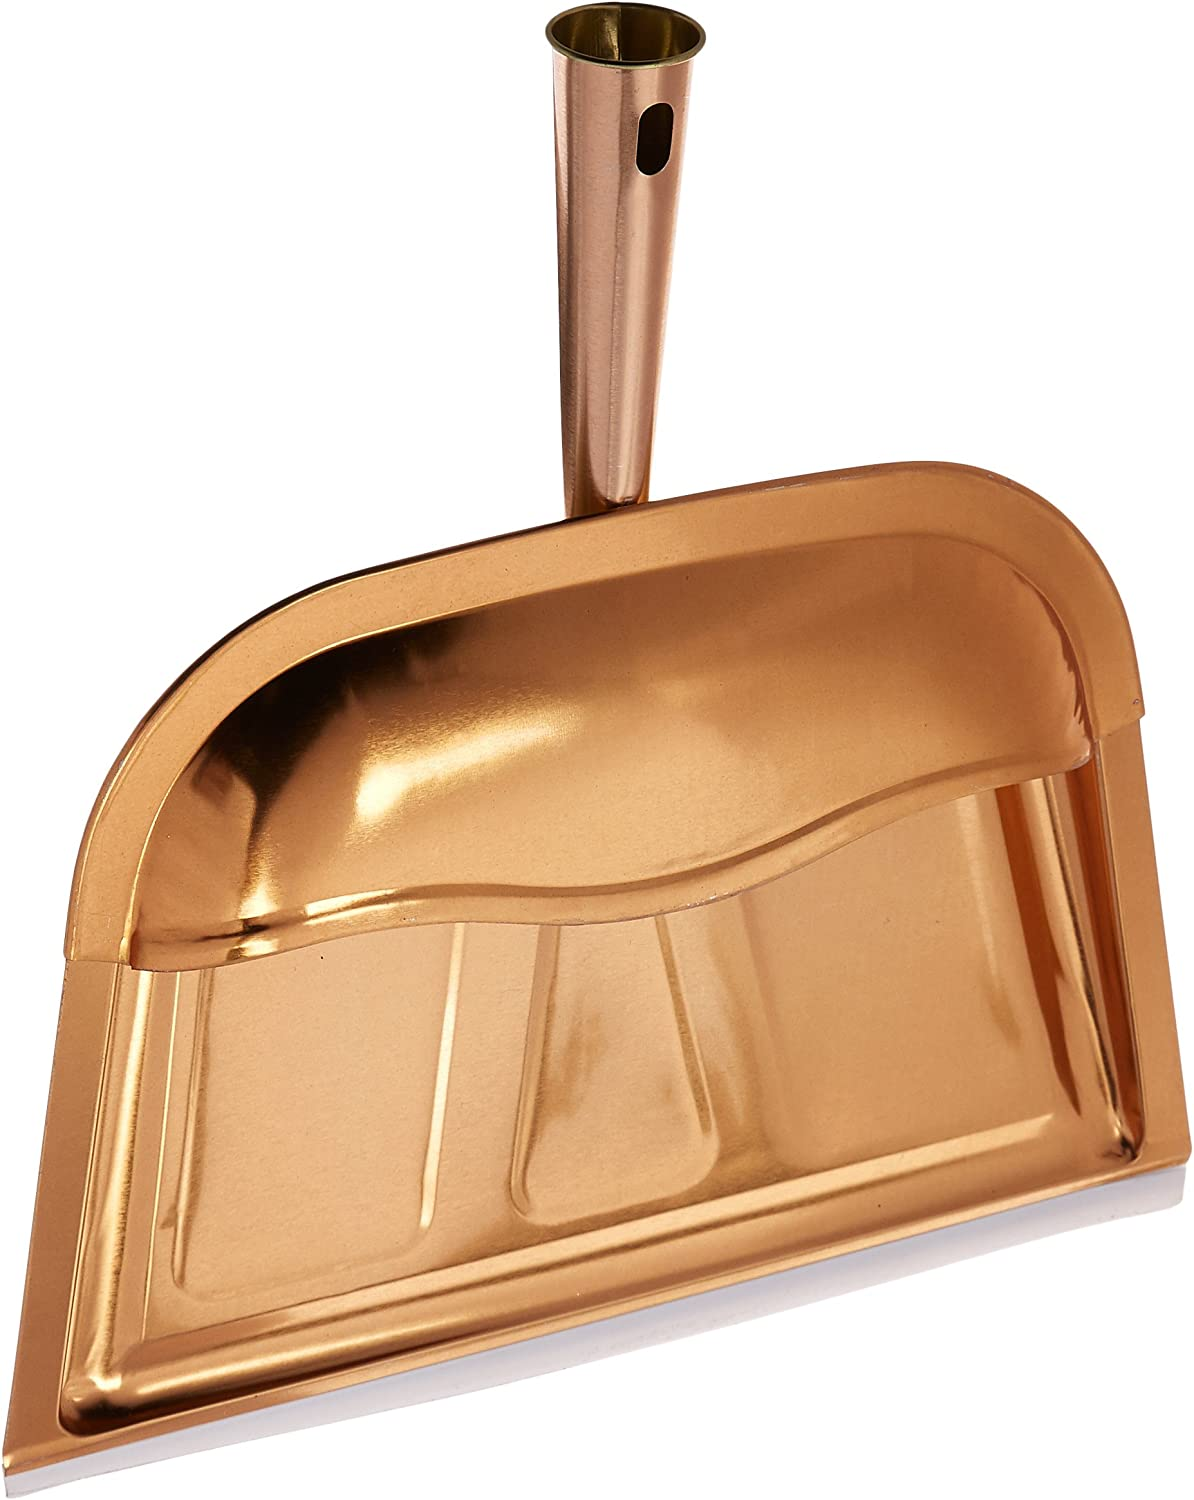 Range Kleen DP1CP Copper Our shop most Bombing free shipping popular Dust Pan Hooded